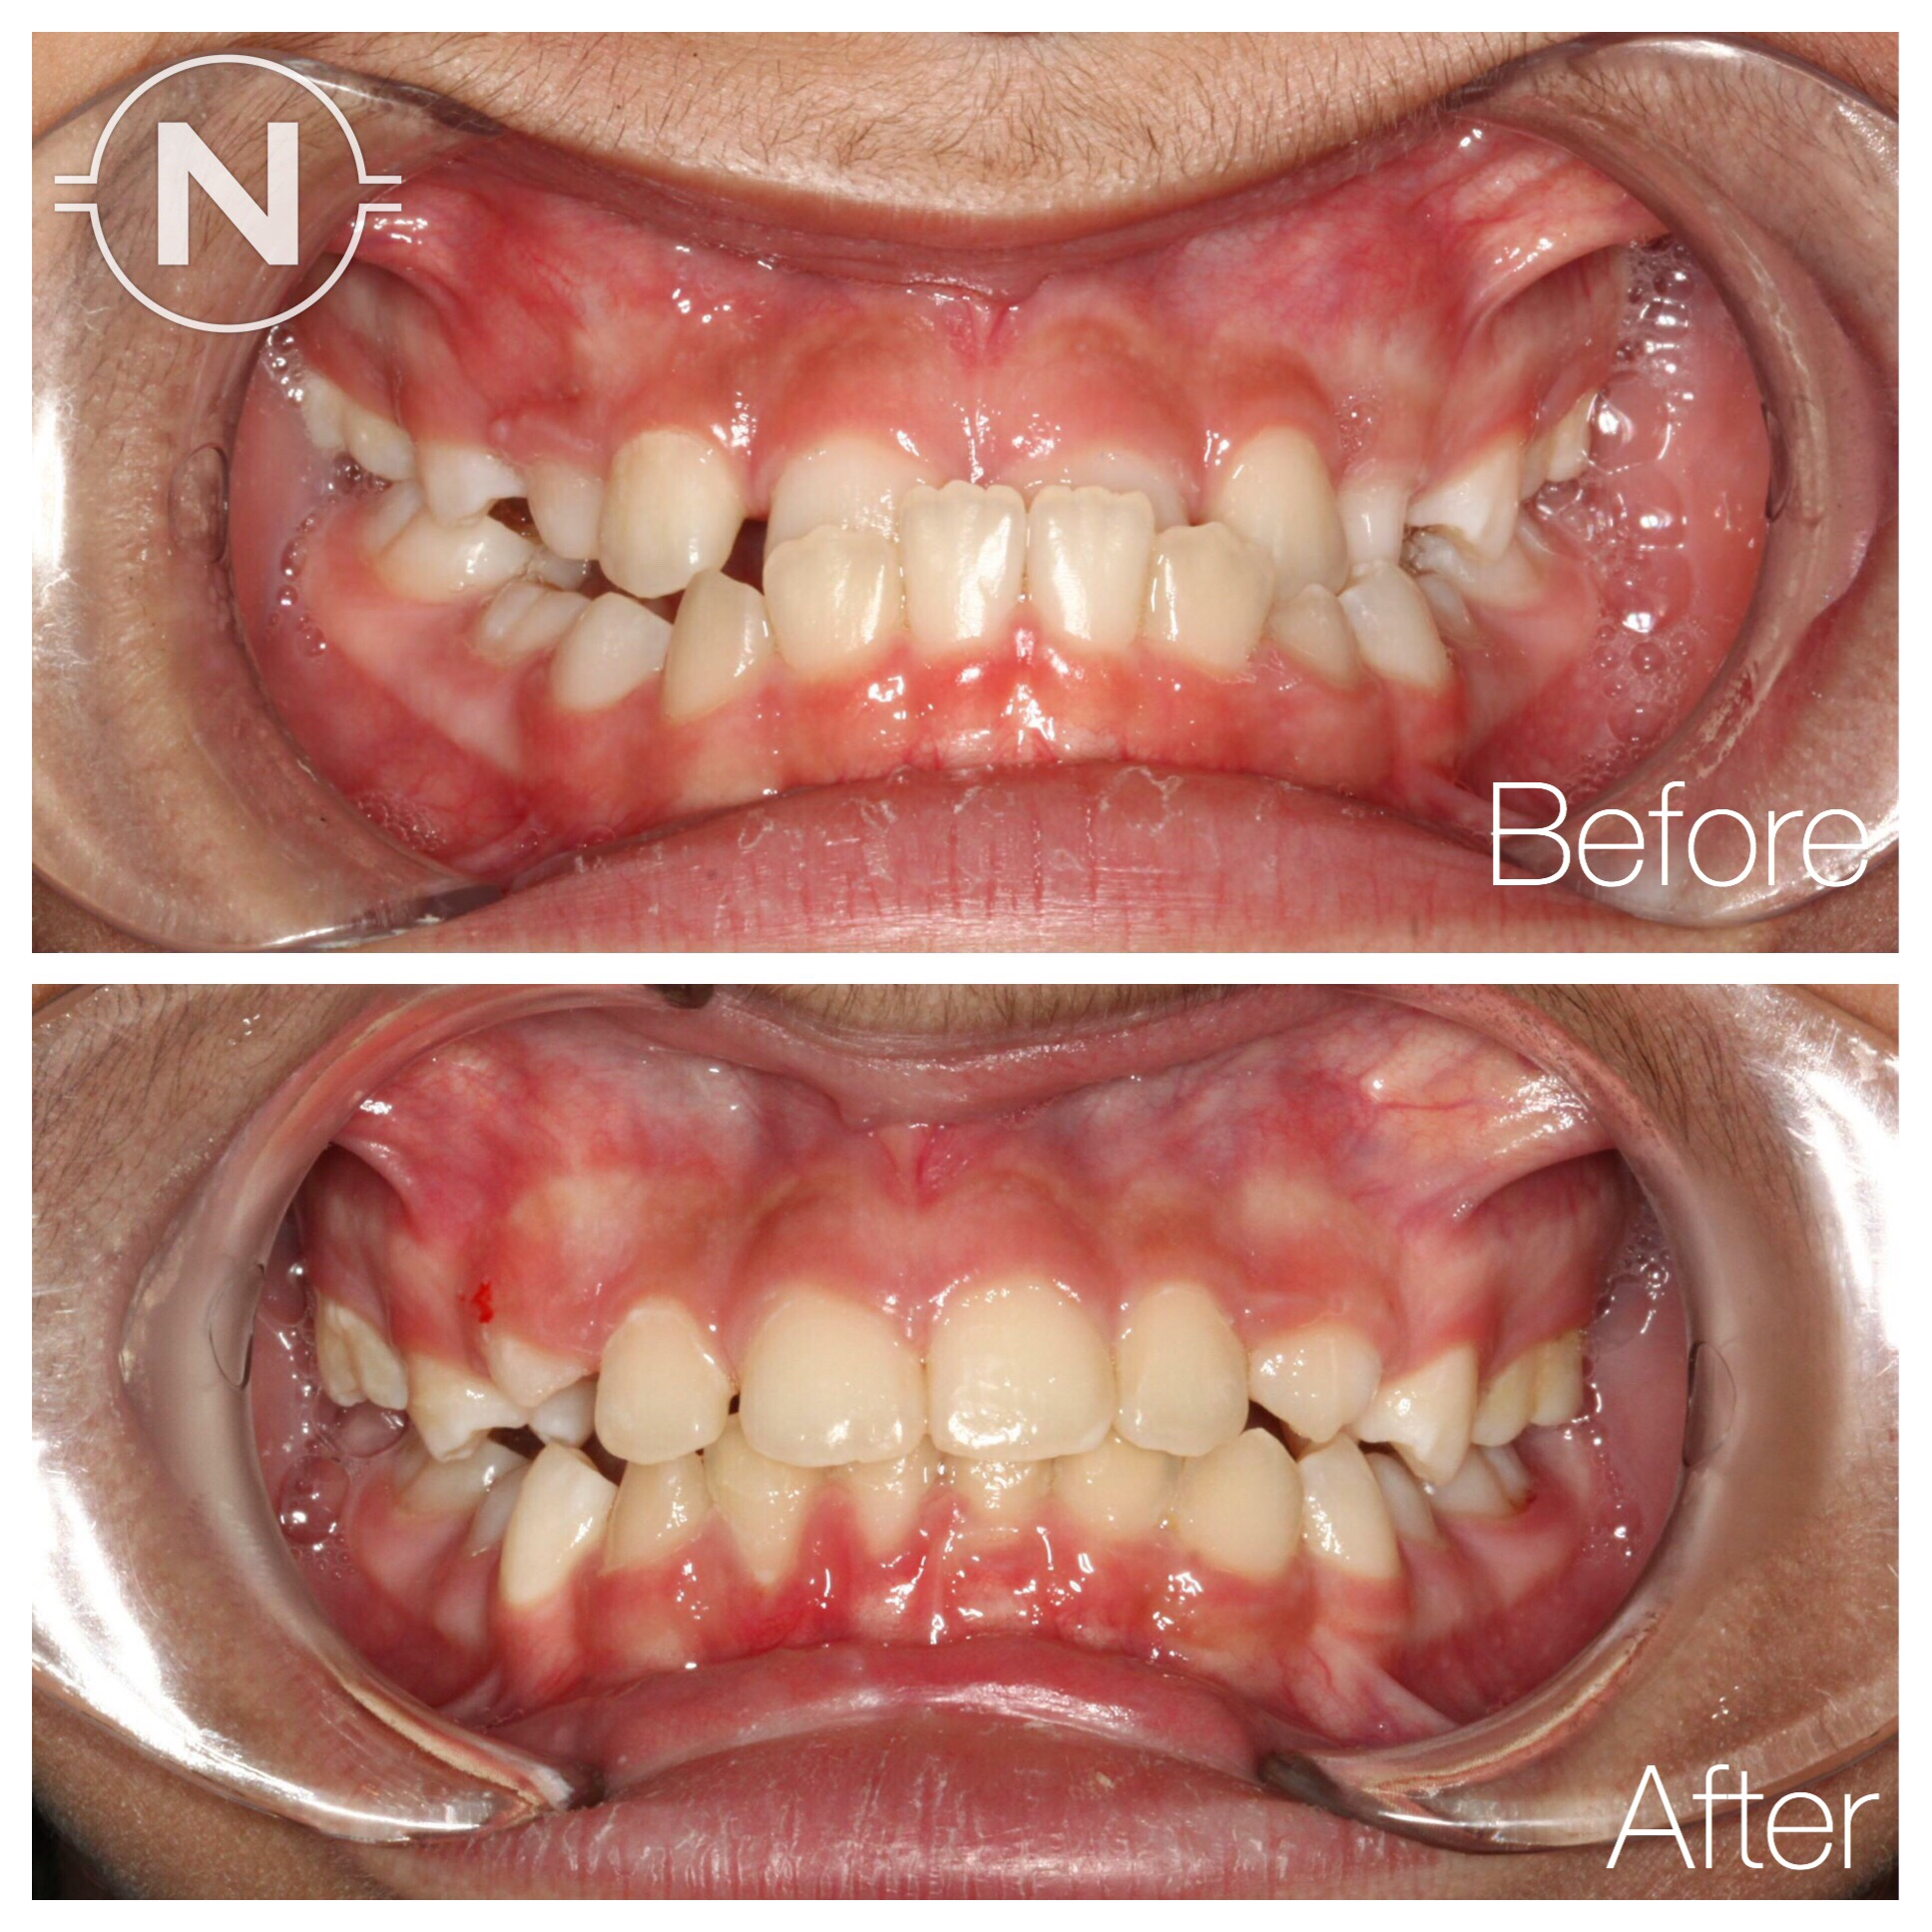 Early Orthodontic Treatment Case 3 Before After Image